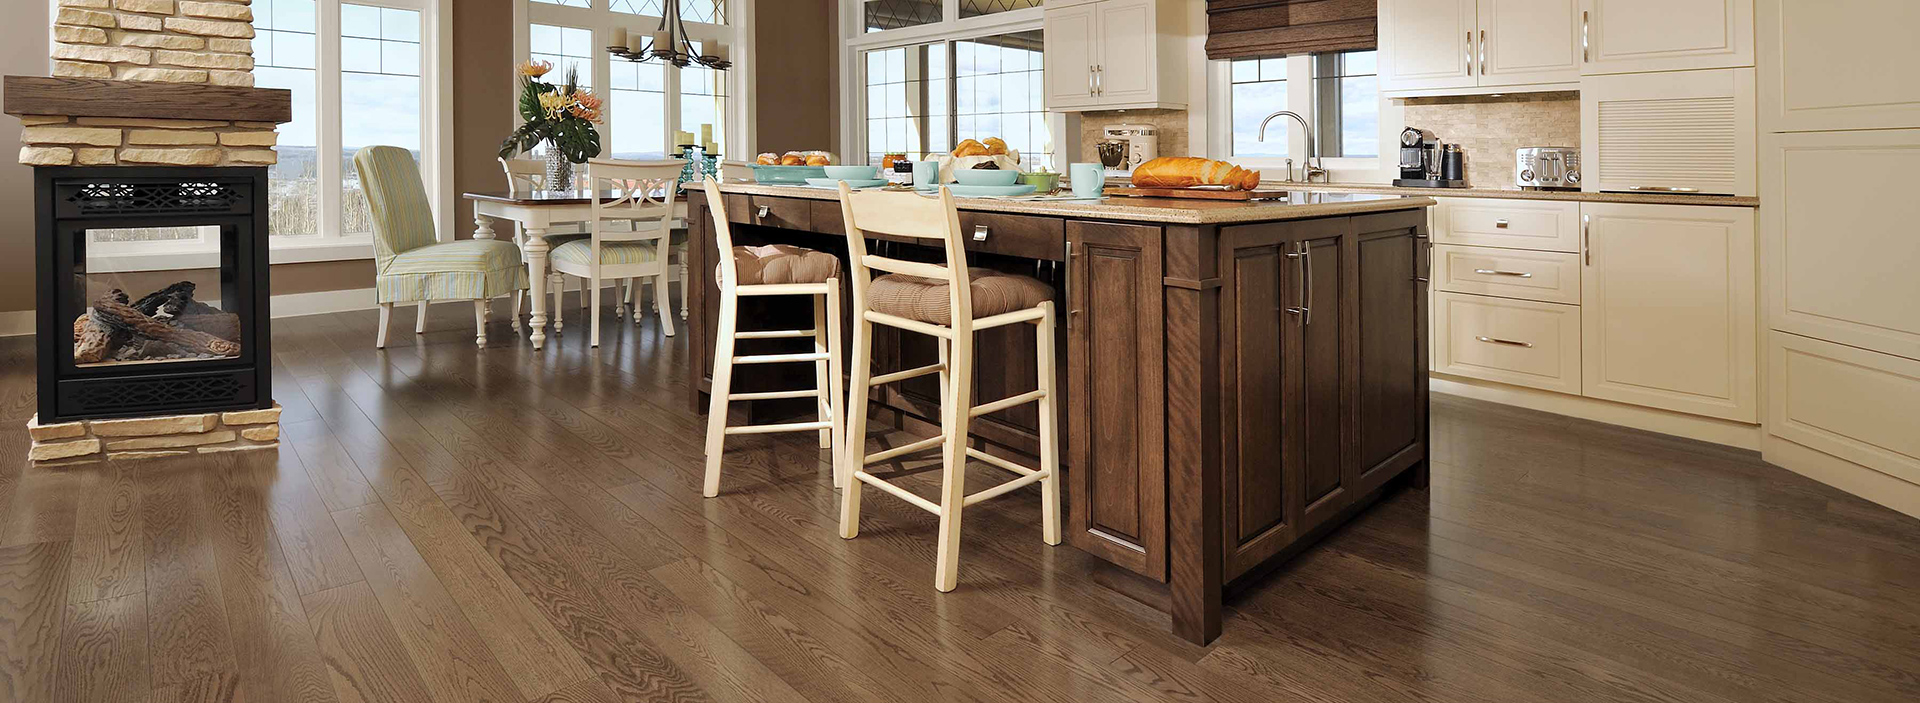 DLV Flooring - Hardwood Floor Installation and Refinishing - Kansas City, MO